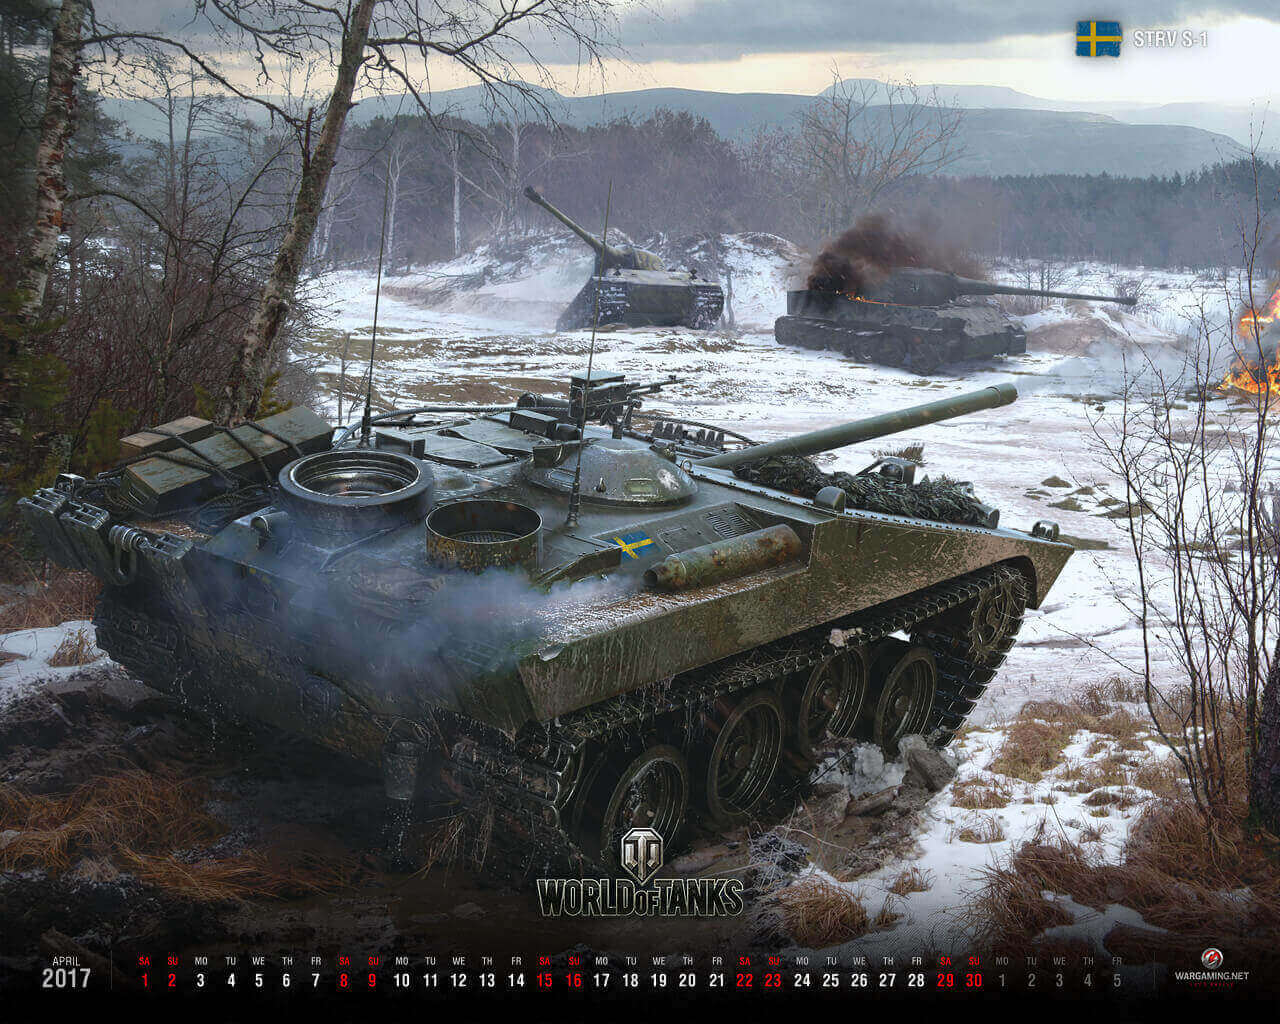 1280x1024 strv s 1calendar april2017 eng